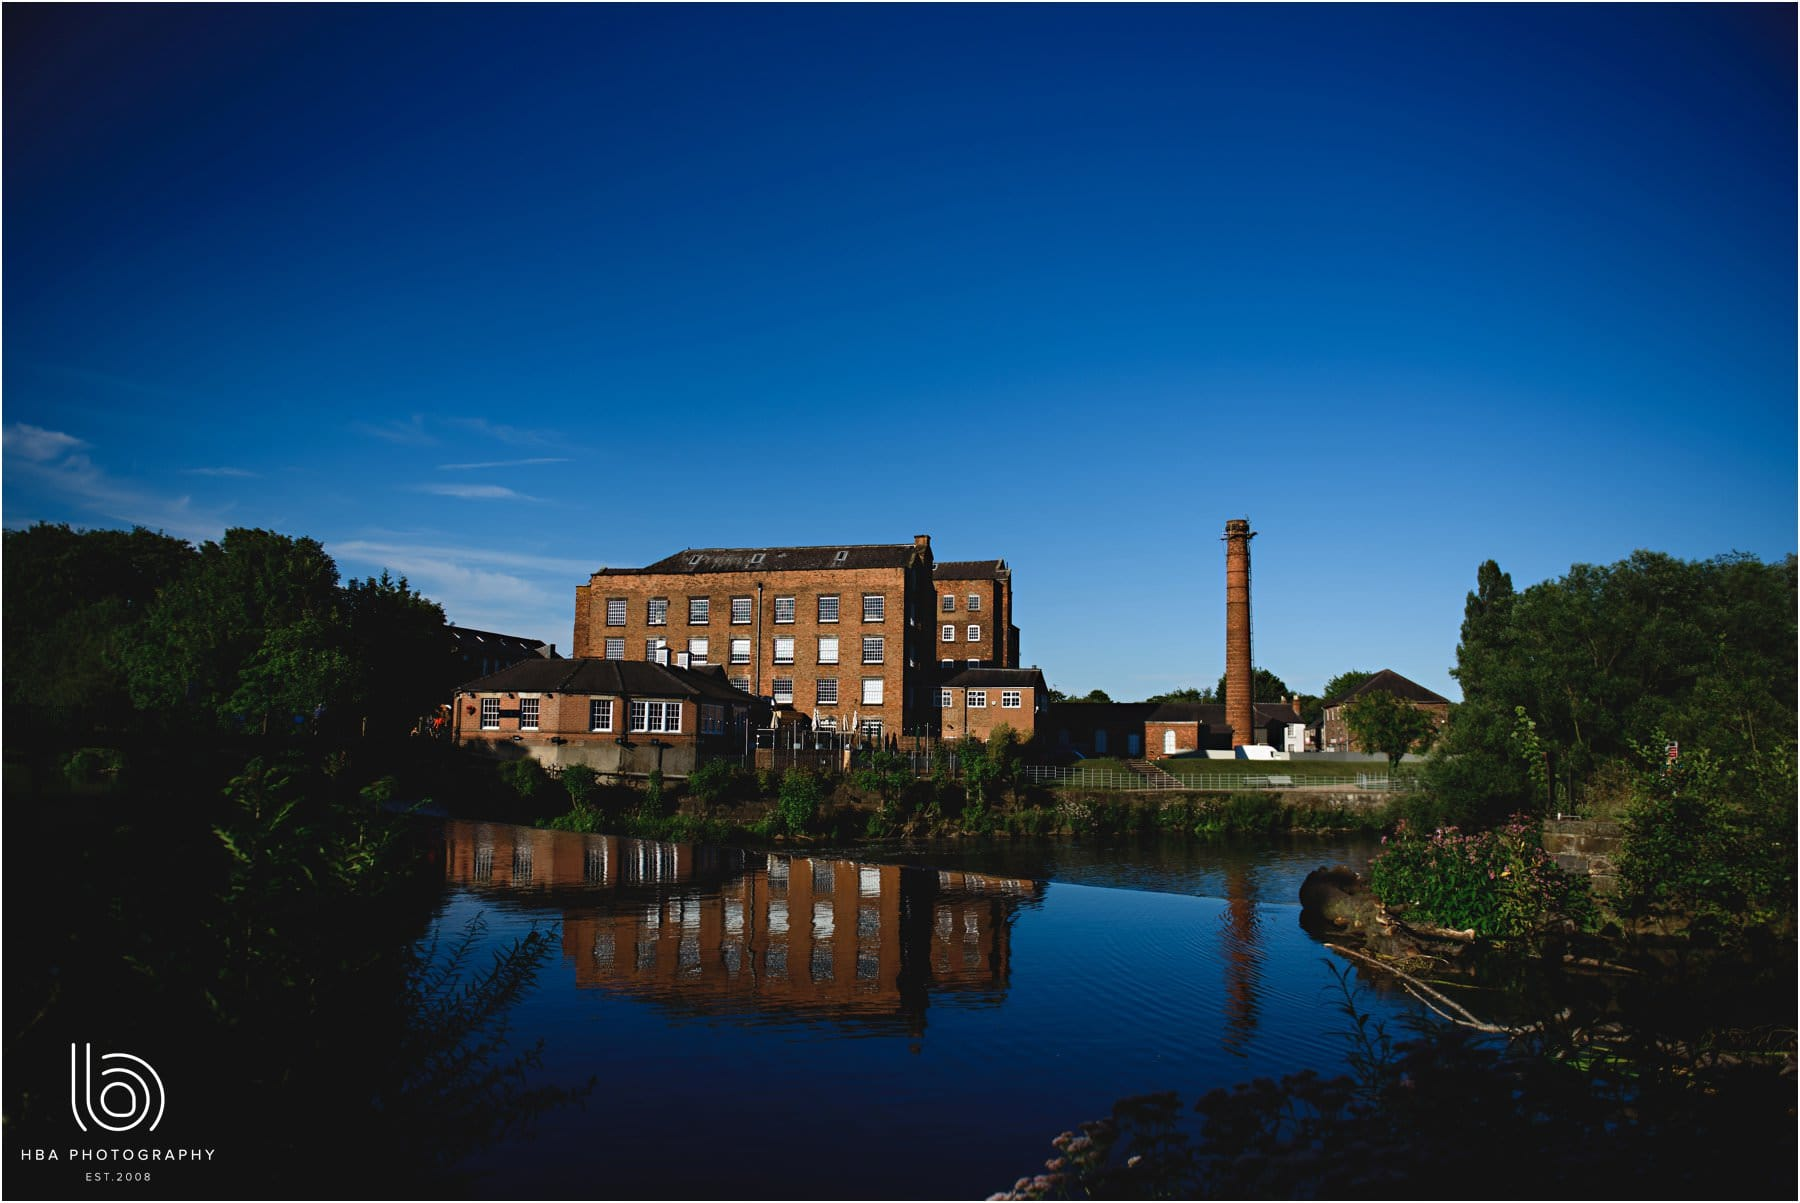 The West Mill